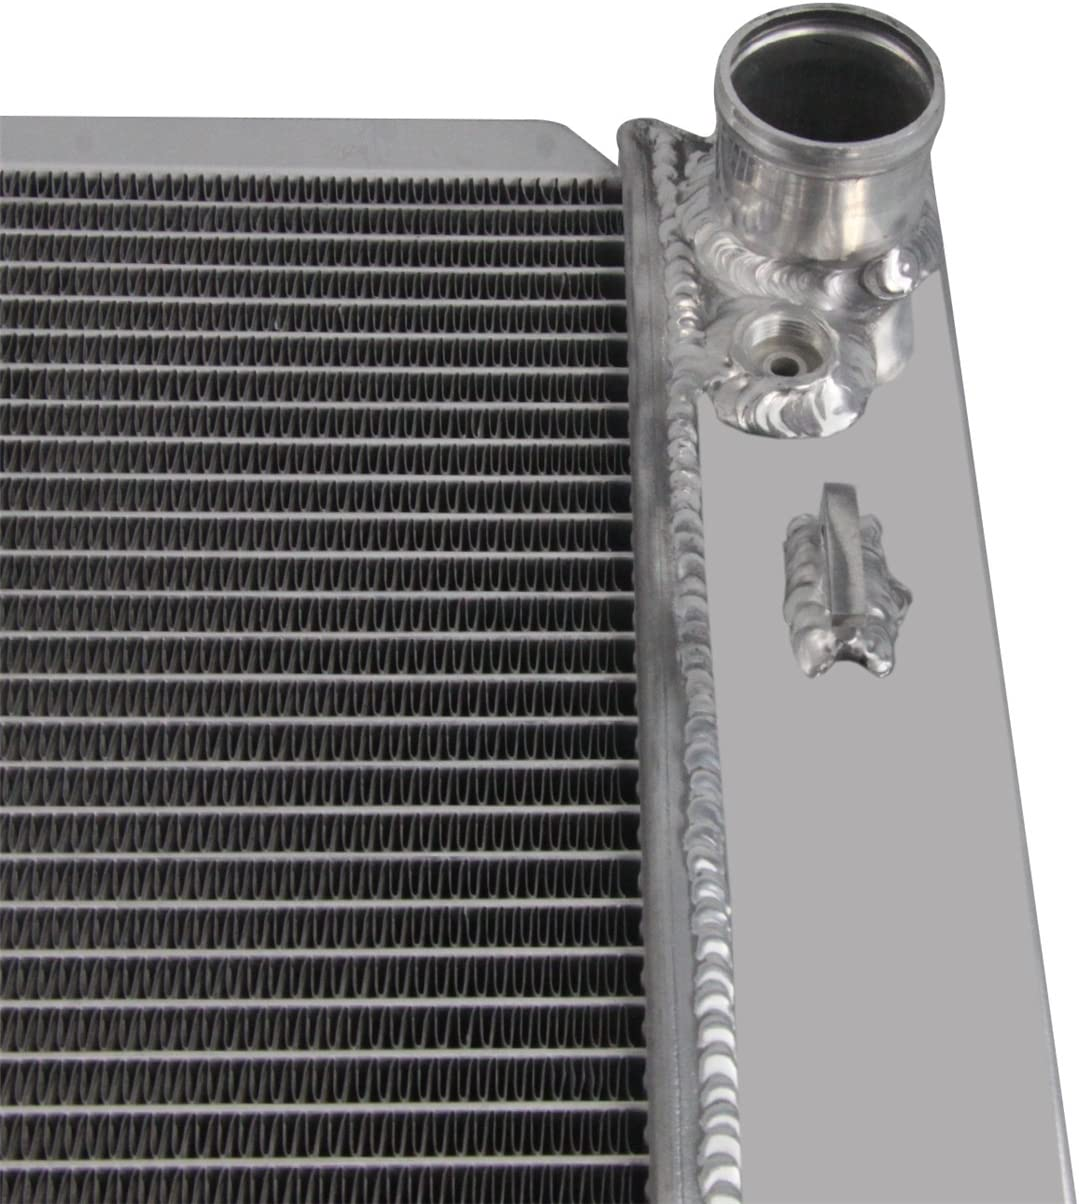 CoolingCare 4 Row Core All Aluminum Radiator for 1997-04 Ford F250 F350 Super Duty /&Lincoln Models 4.2L //5.4L V8